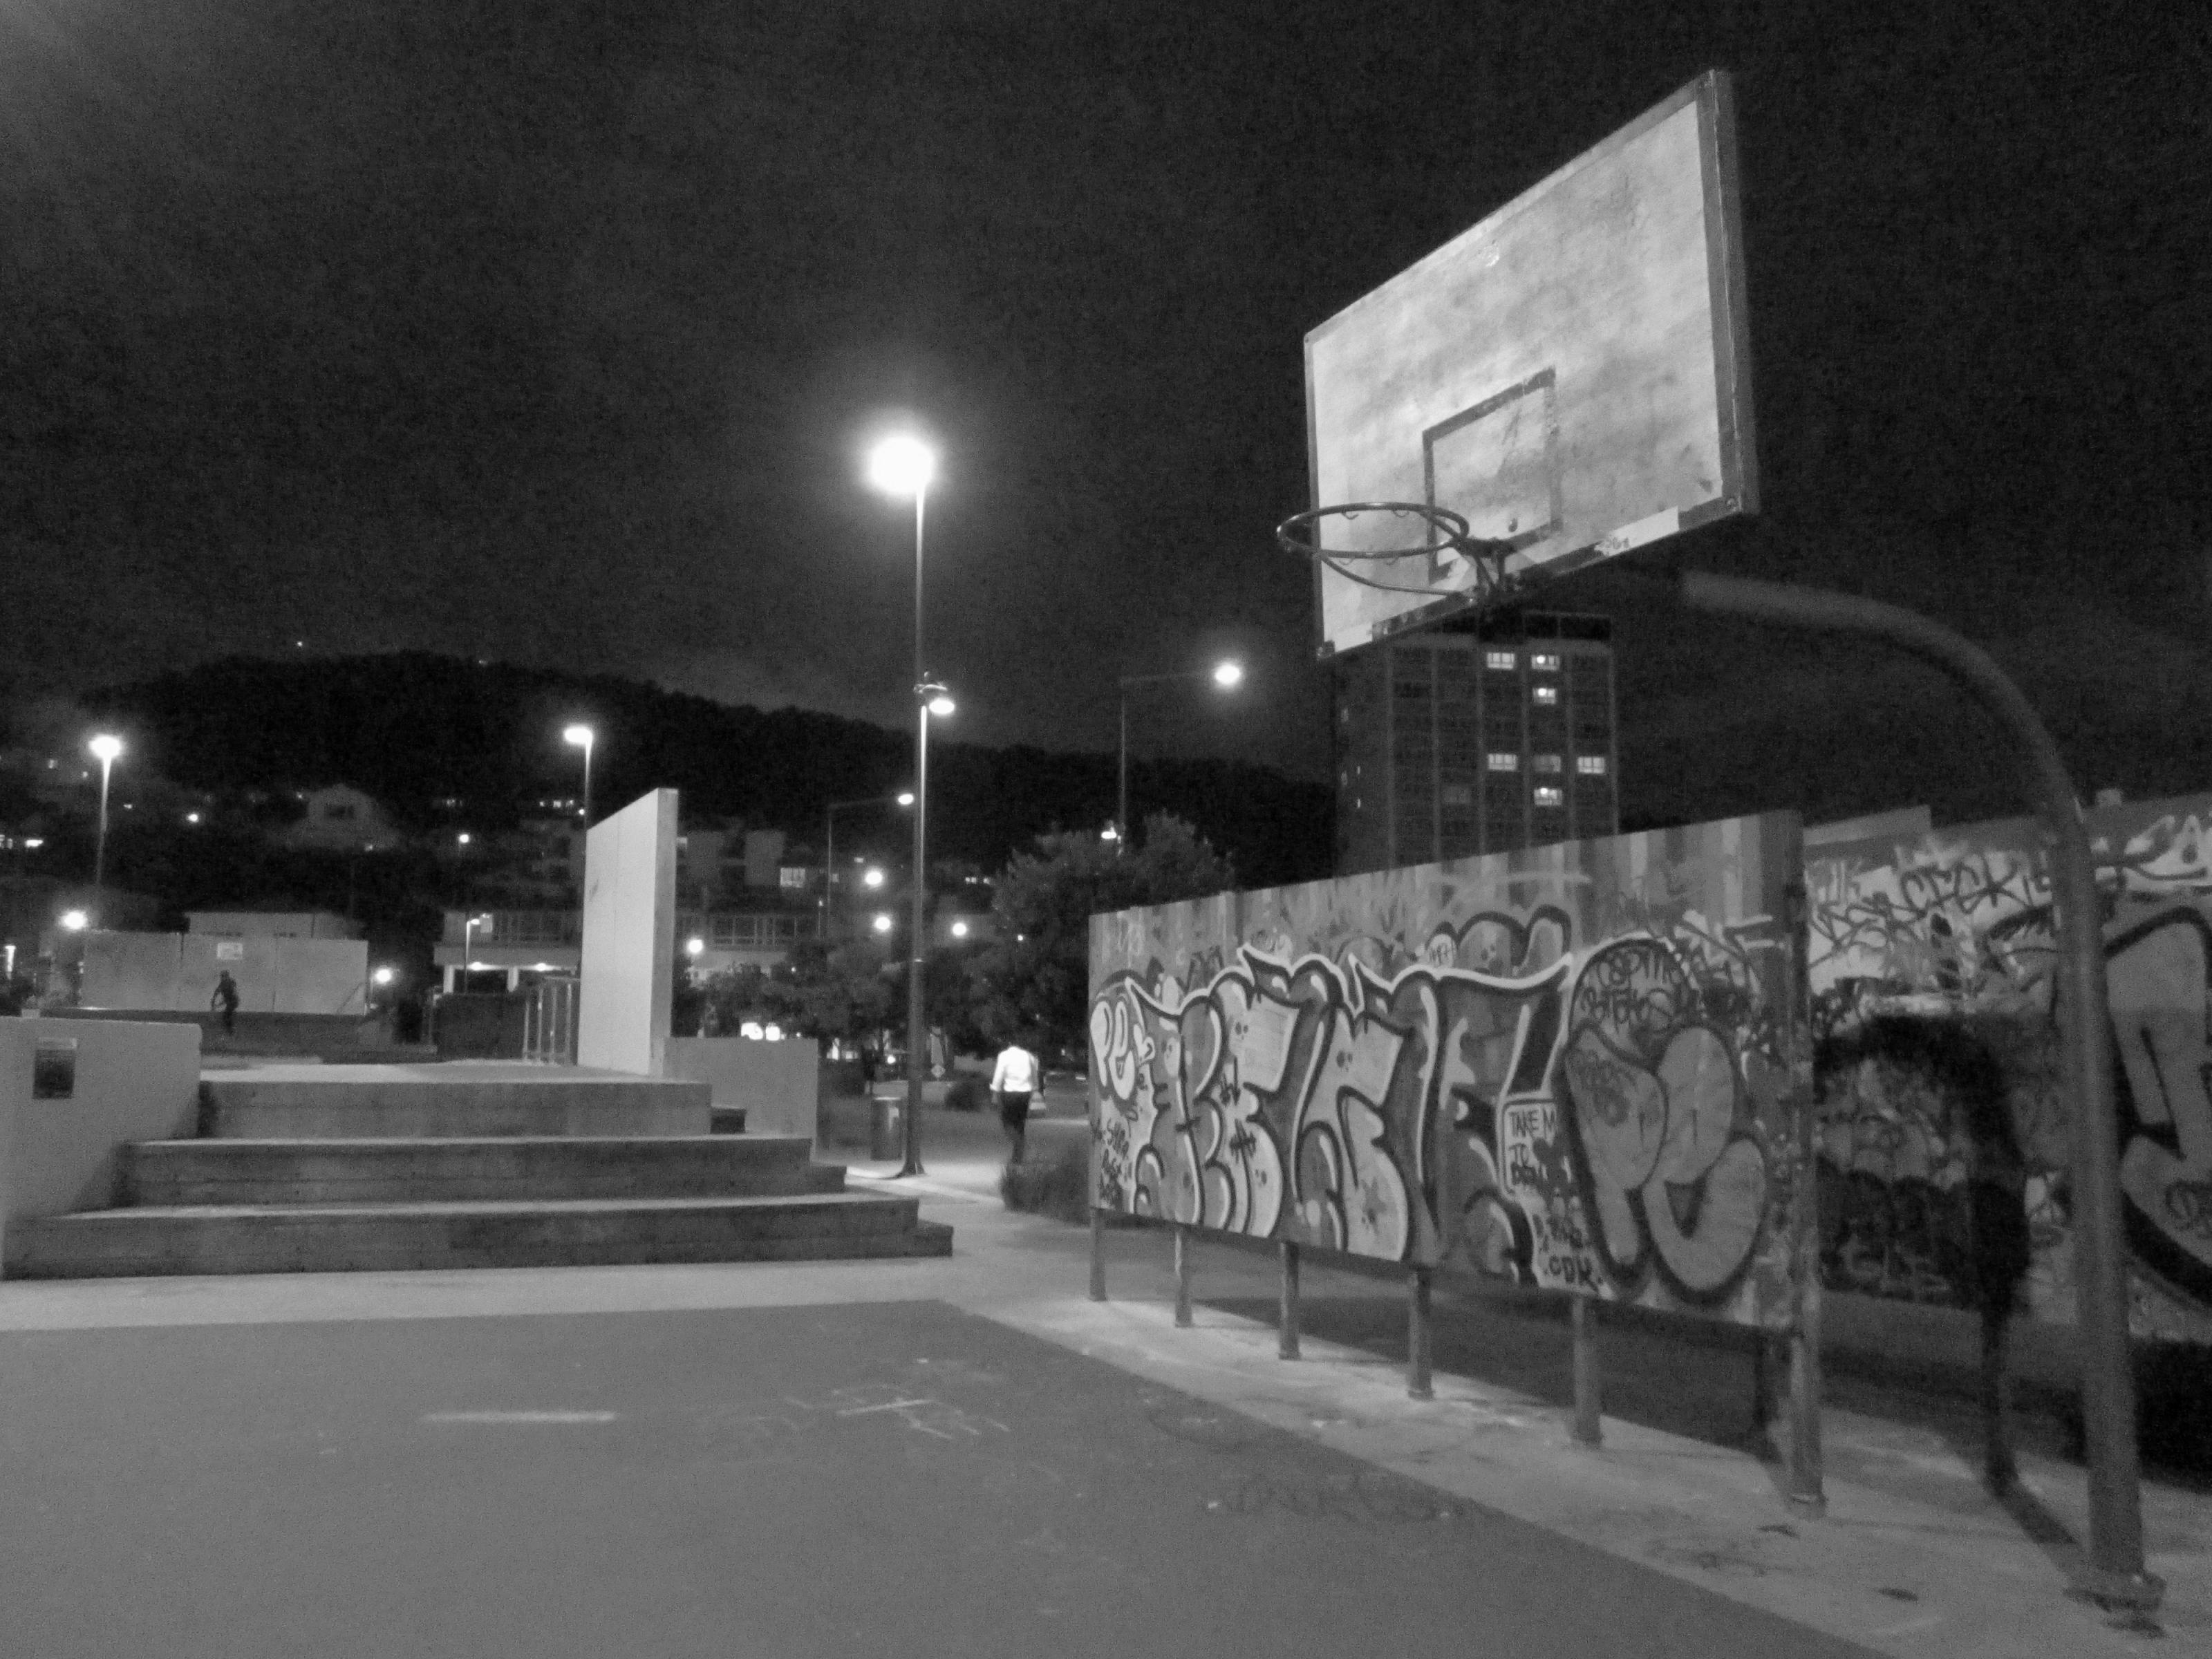 1000+ images about Ideas for bboy bball scene on Pinterest